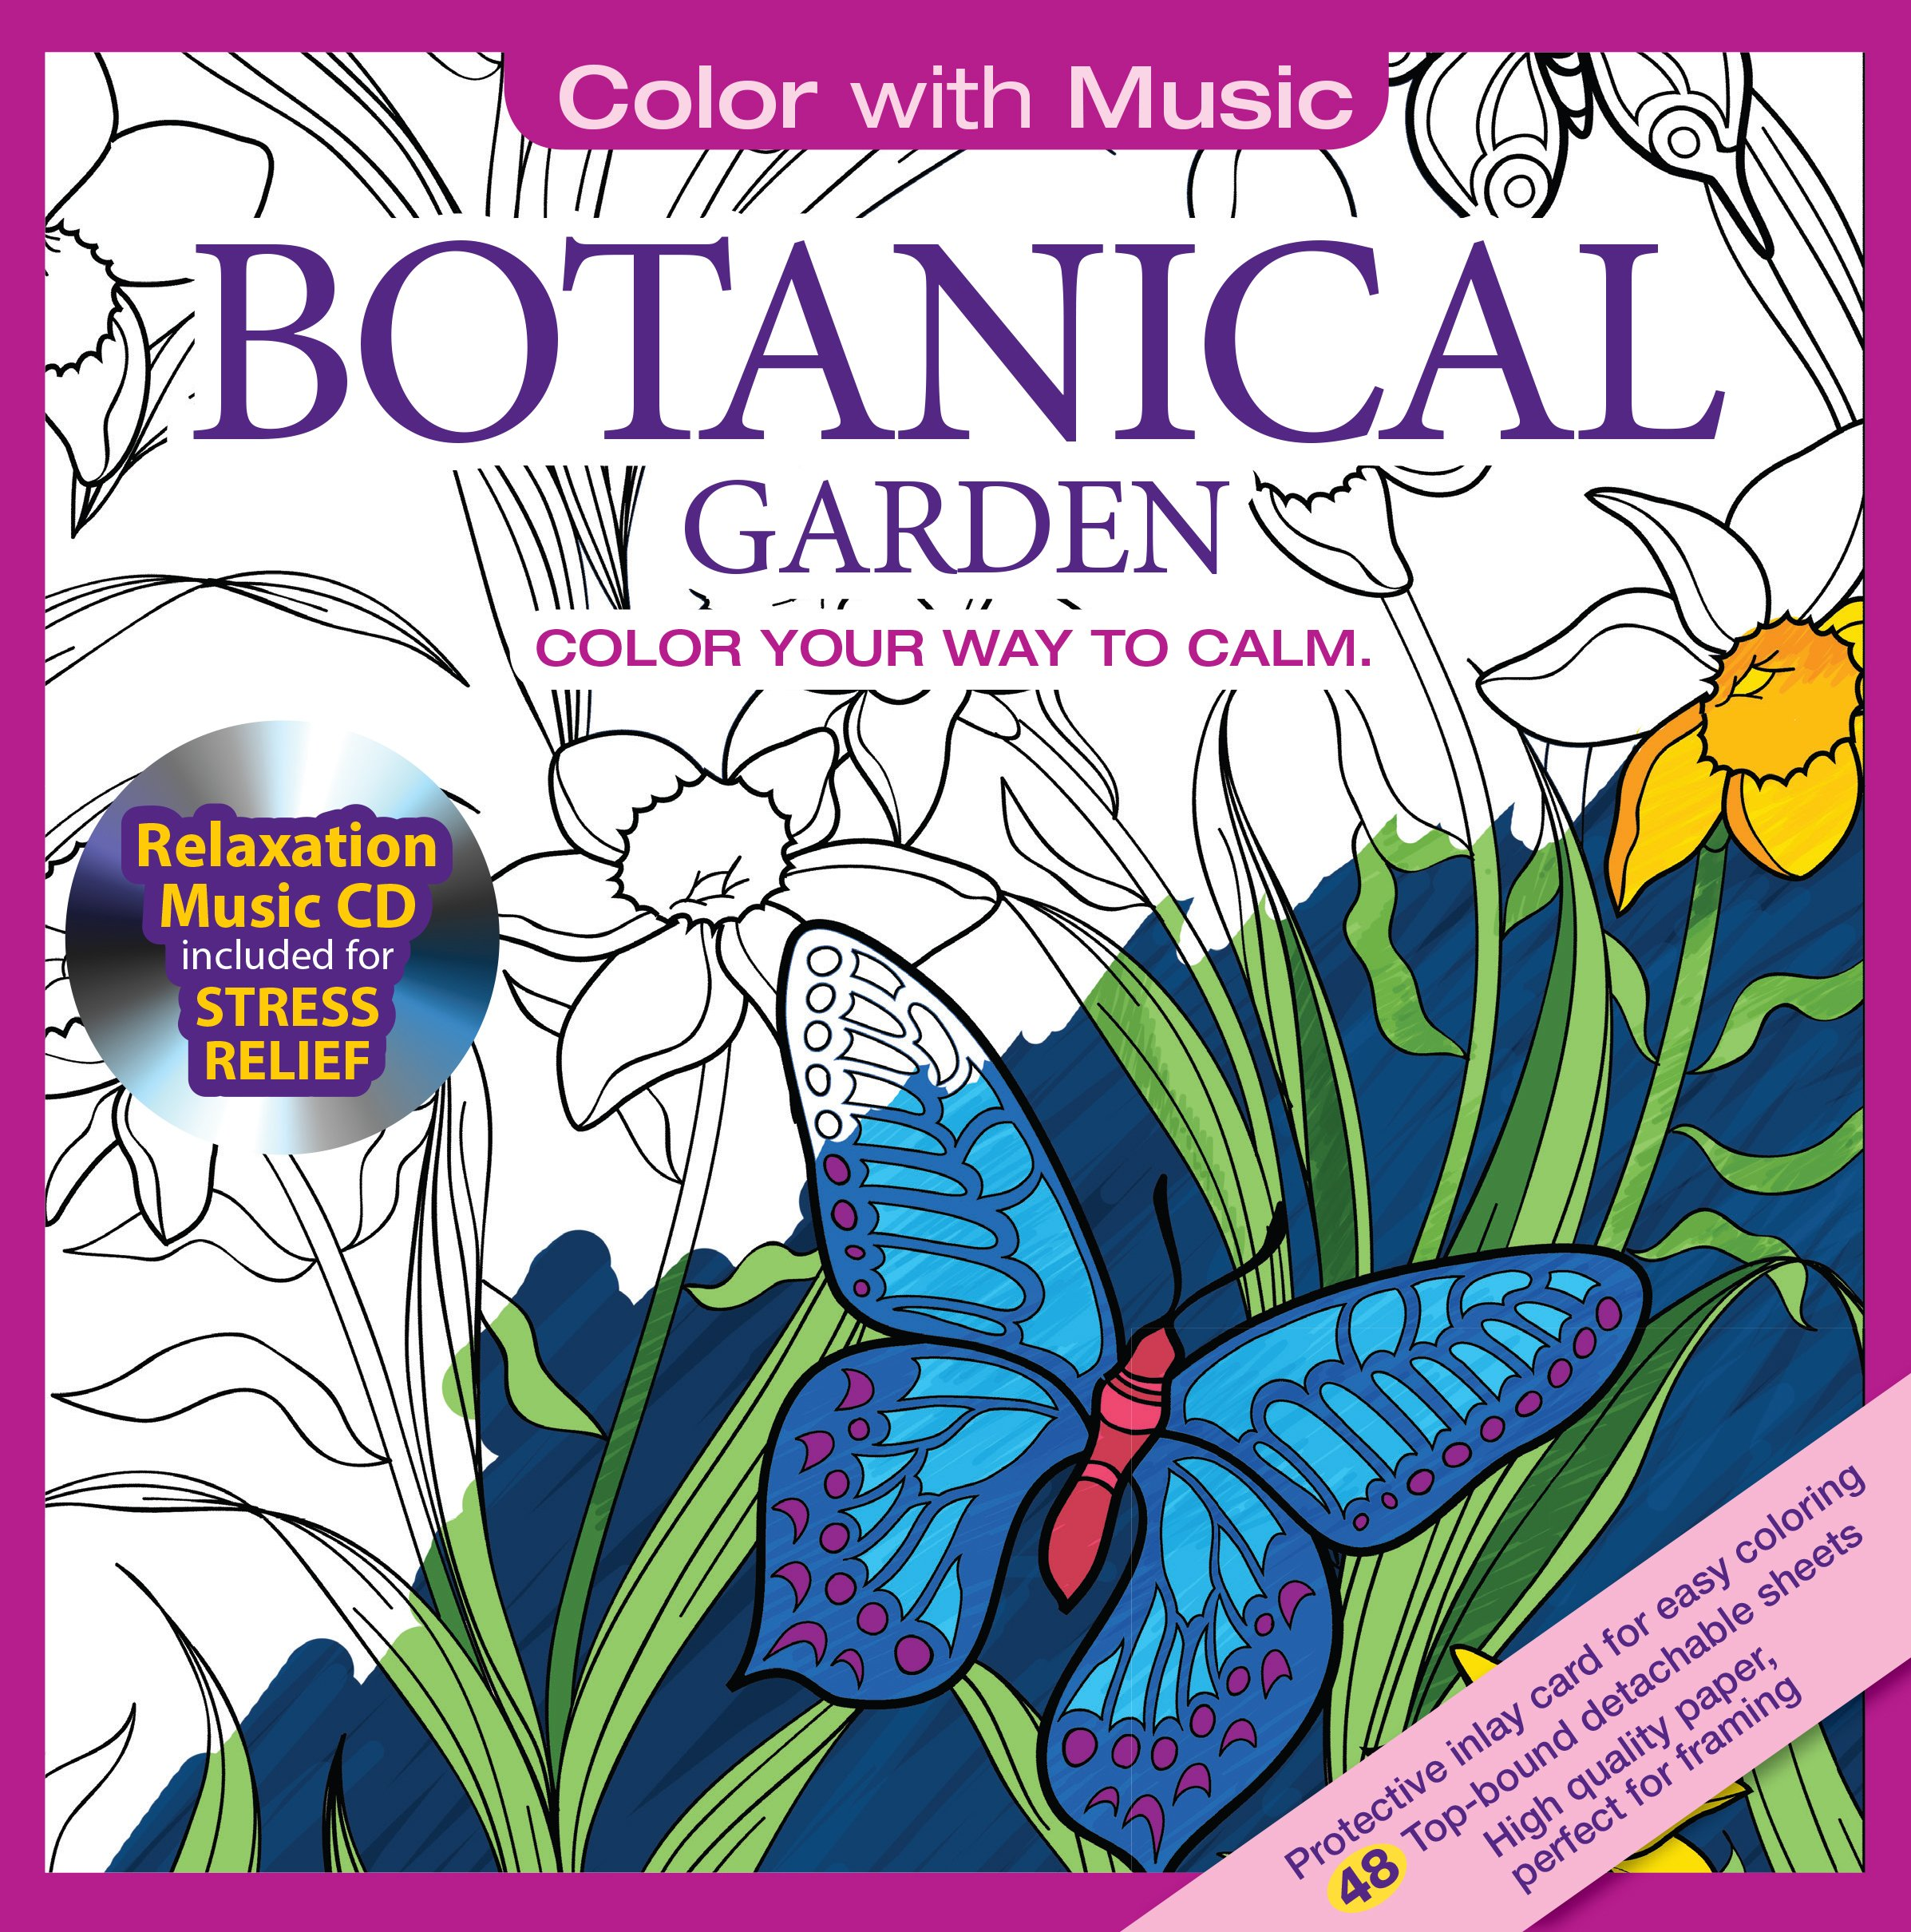 amazoncom botanical garden adult coloring book with bonus relaxation music cd included color with music 9781988137018 newbourne media books